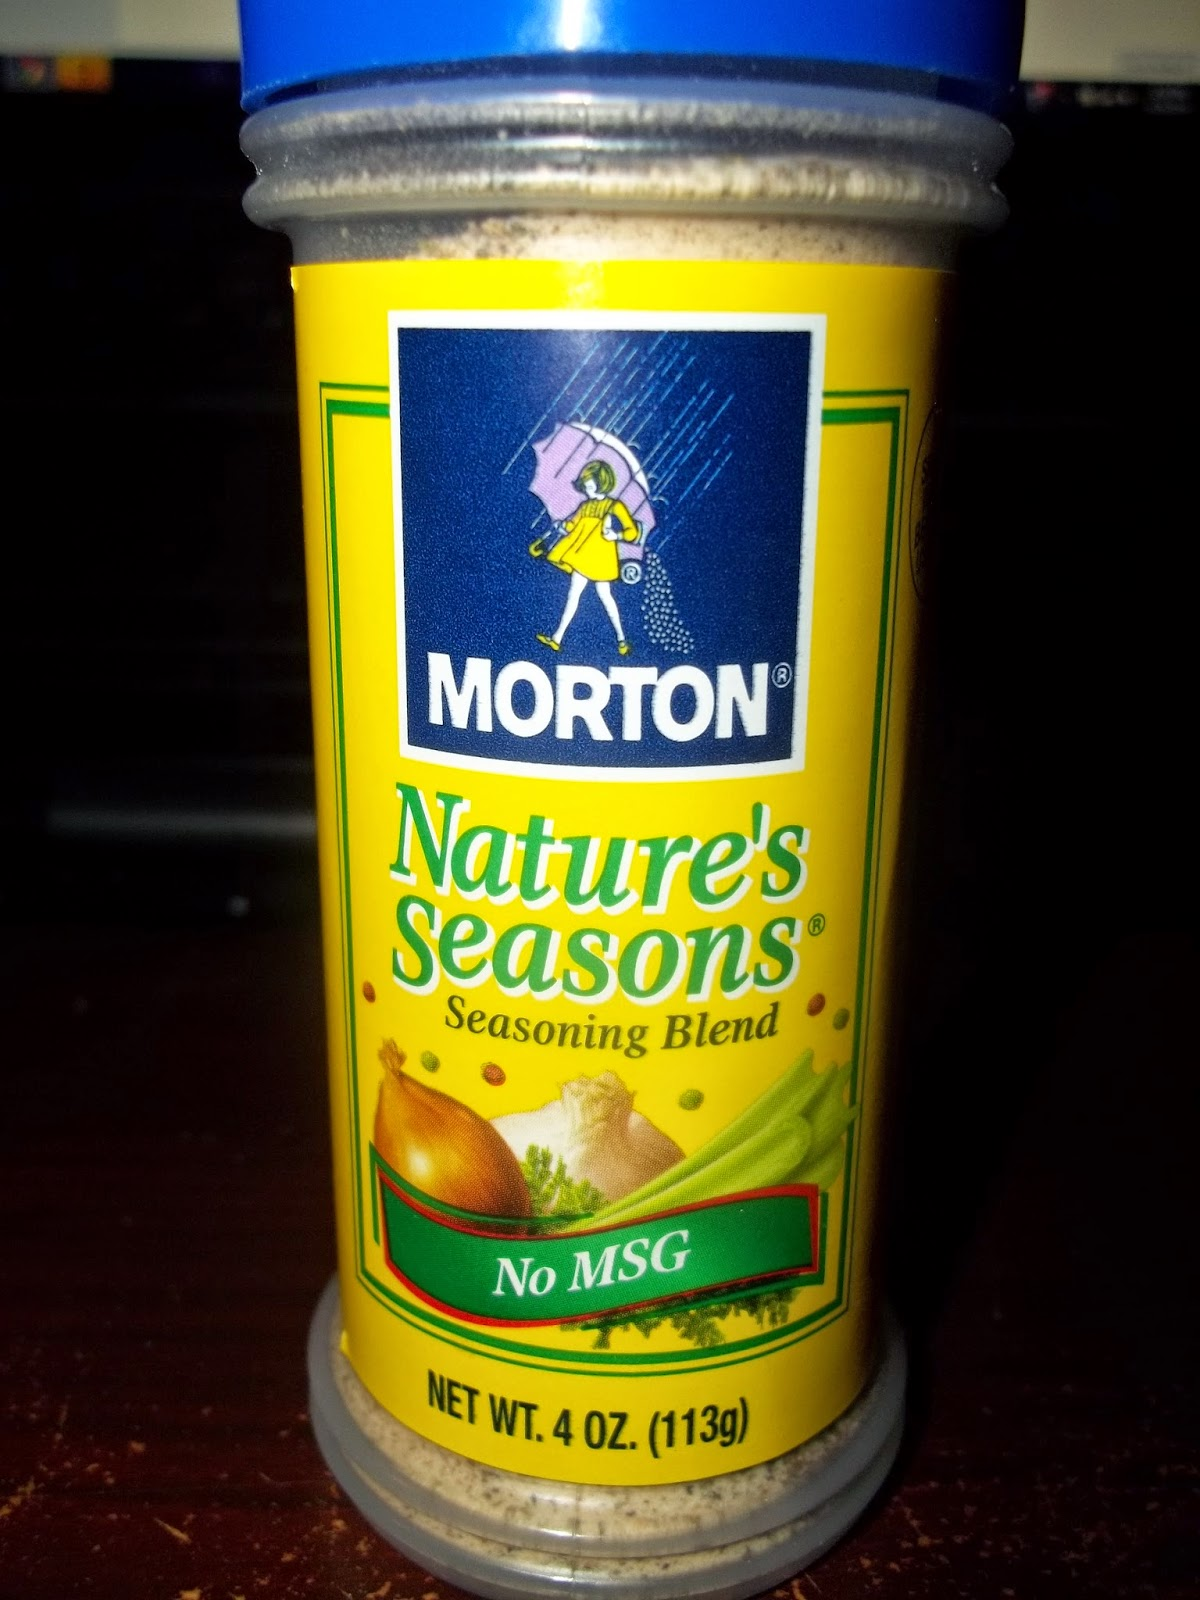 Ramblings Thoughts, Video Review, Review, Seasoning, Spice, Kitchen, No msg, Nature's Seasons, Mortons